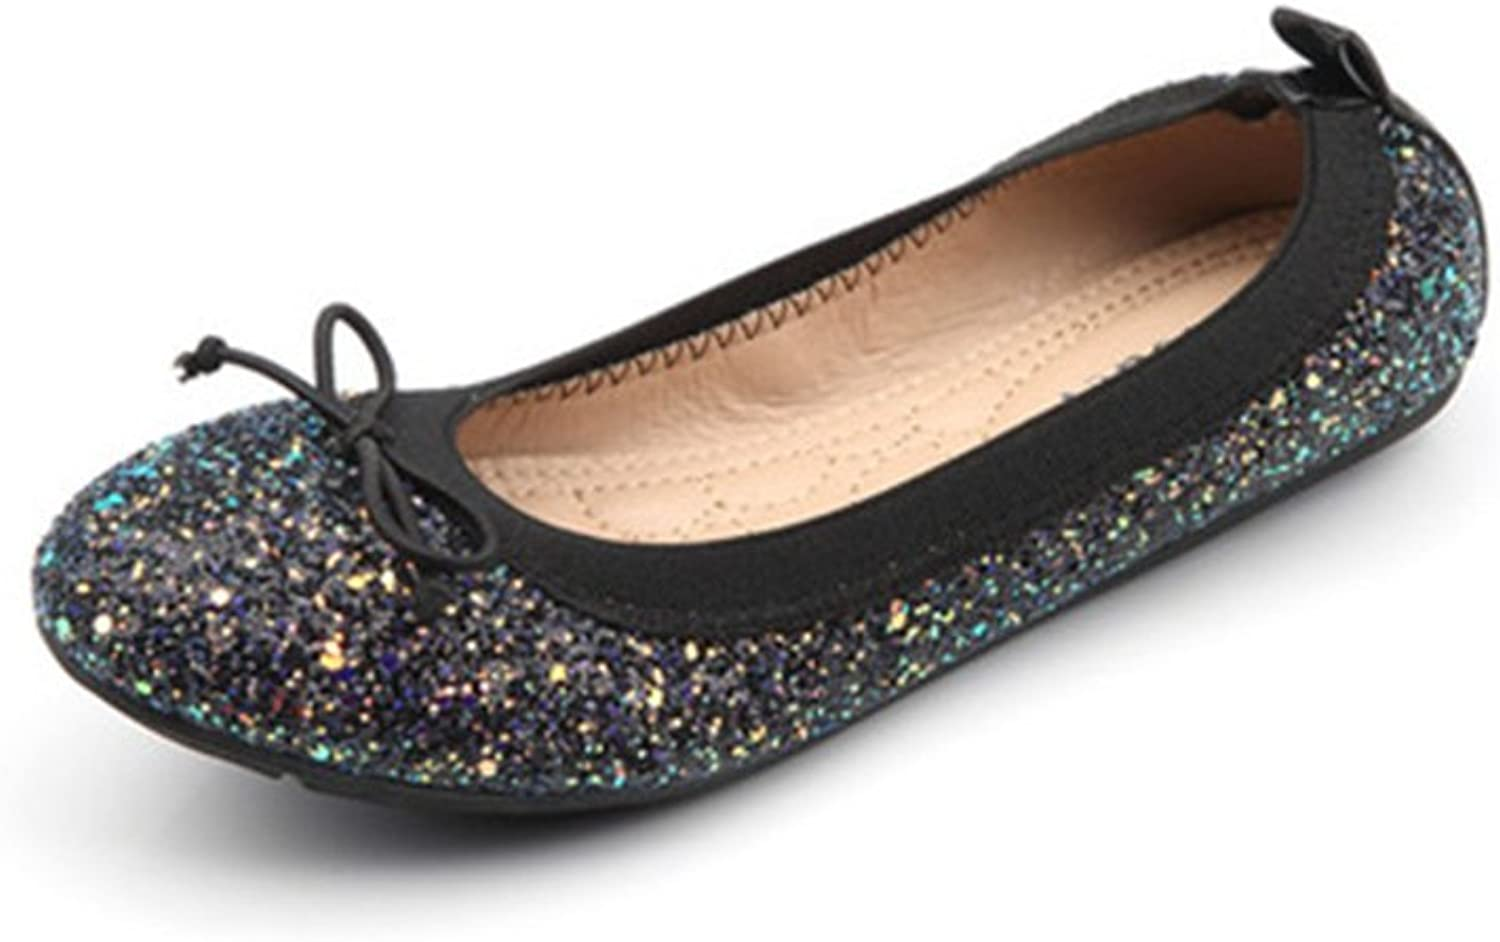 Sequins Ballet Flats for Women, Single Bow Round Toe Bowkont Casual shoes